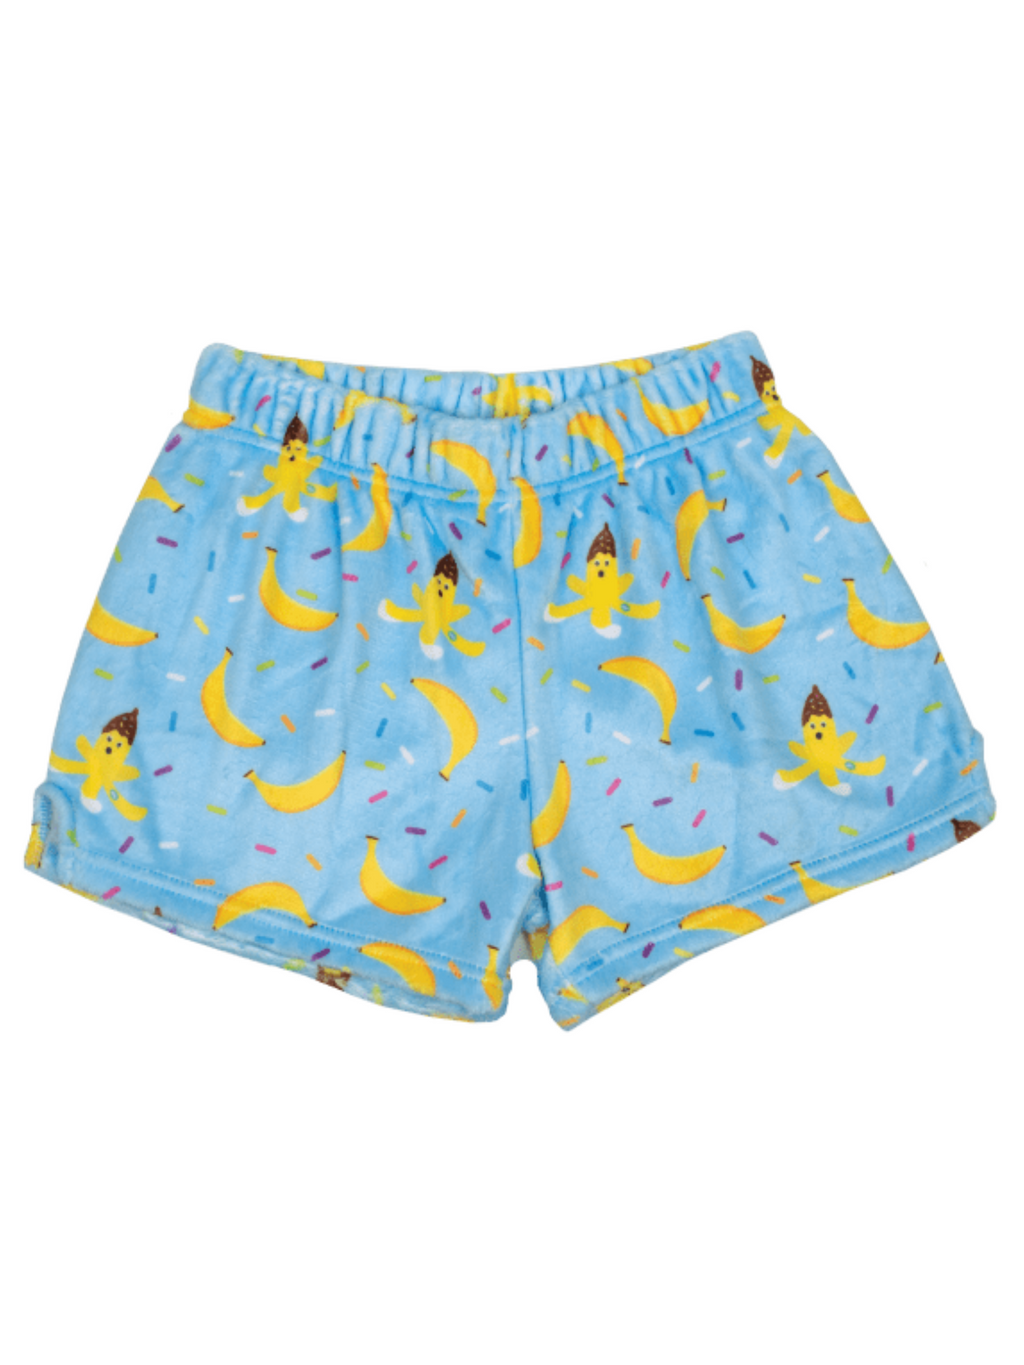 Bananas Fleece Short